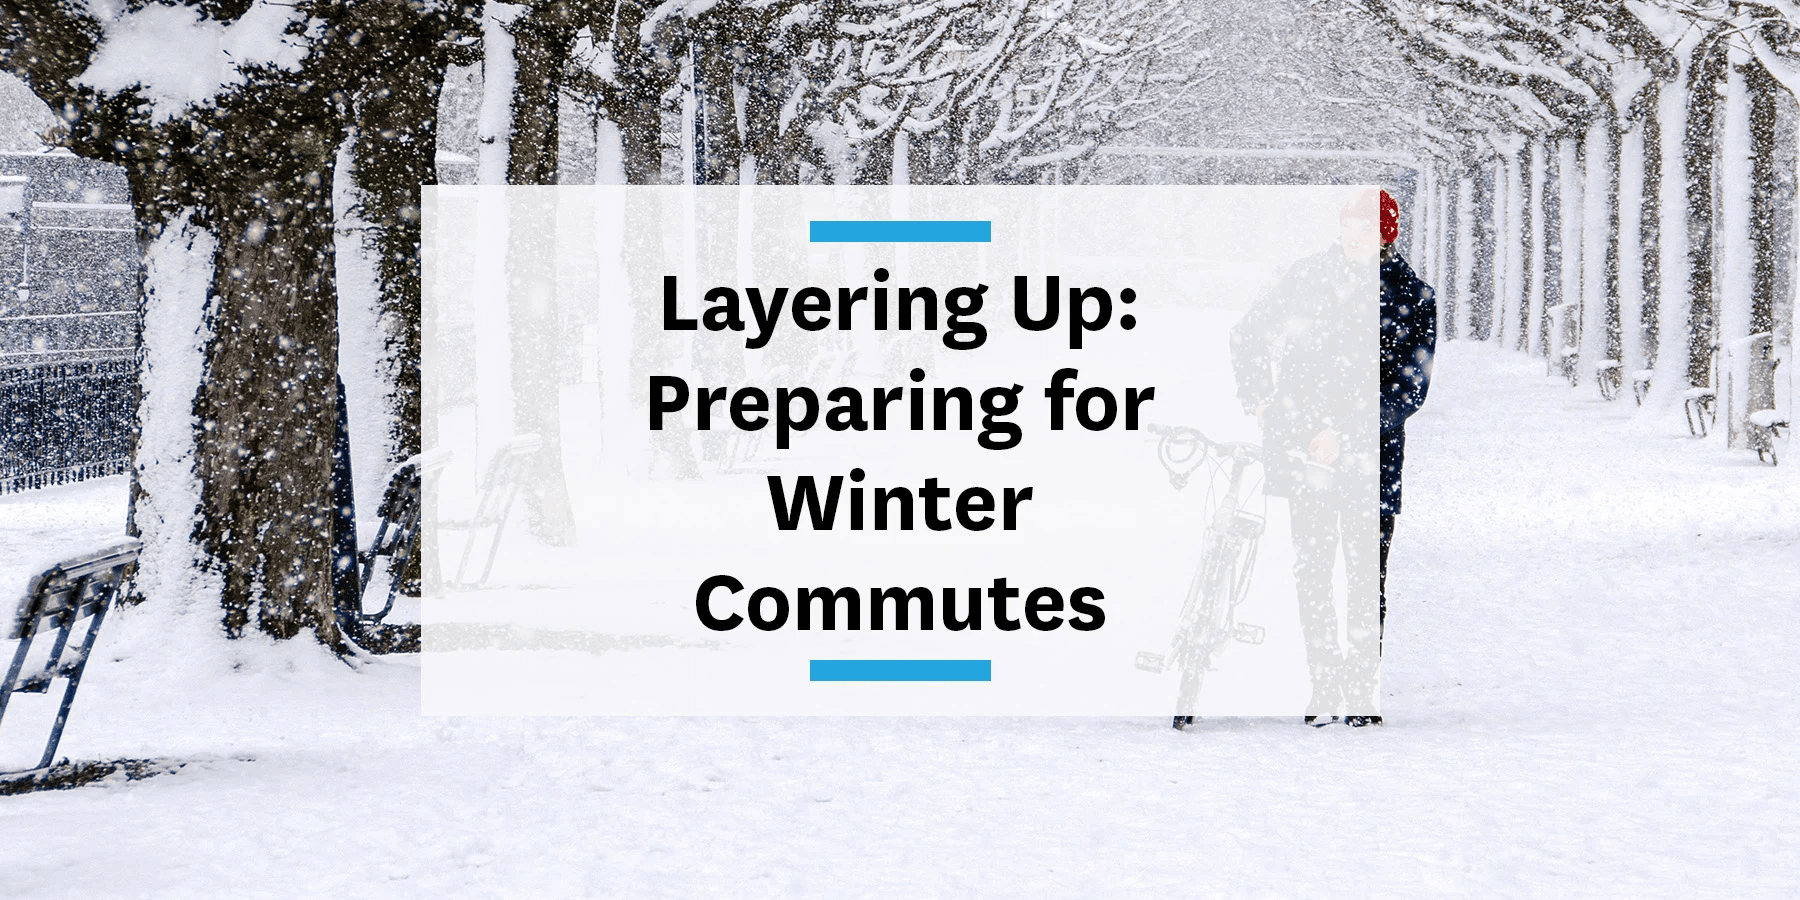 Feature image for preparing for winter commutes